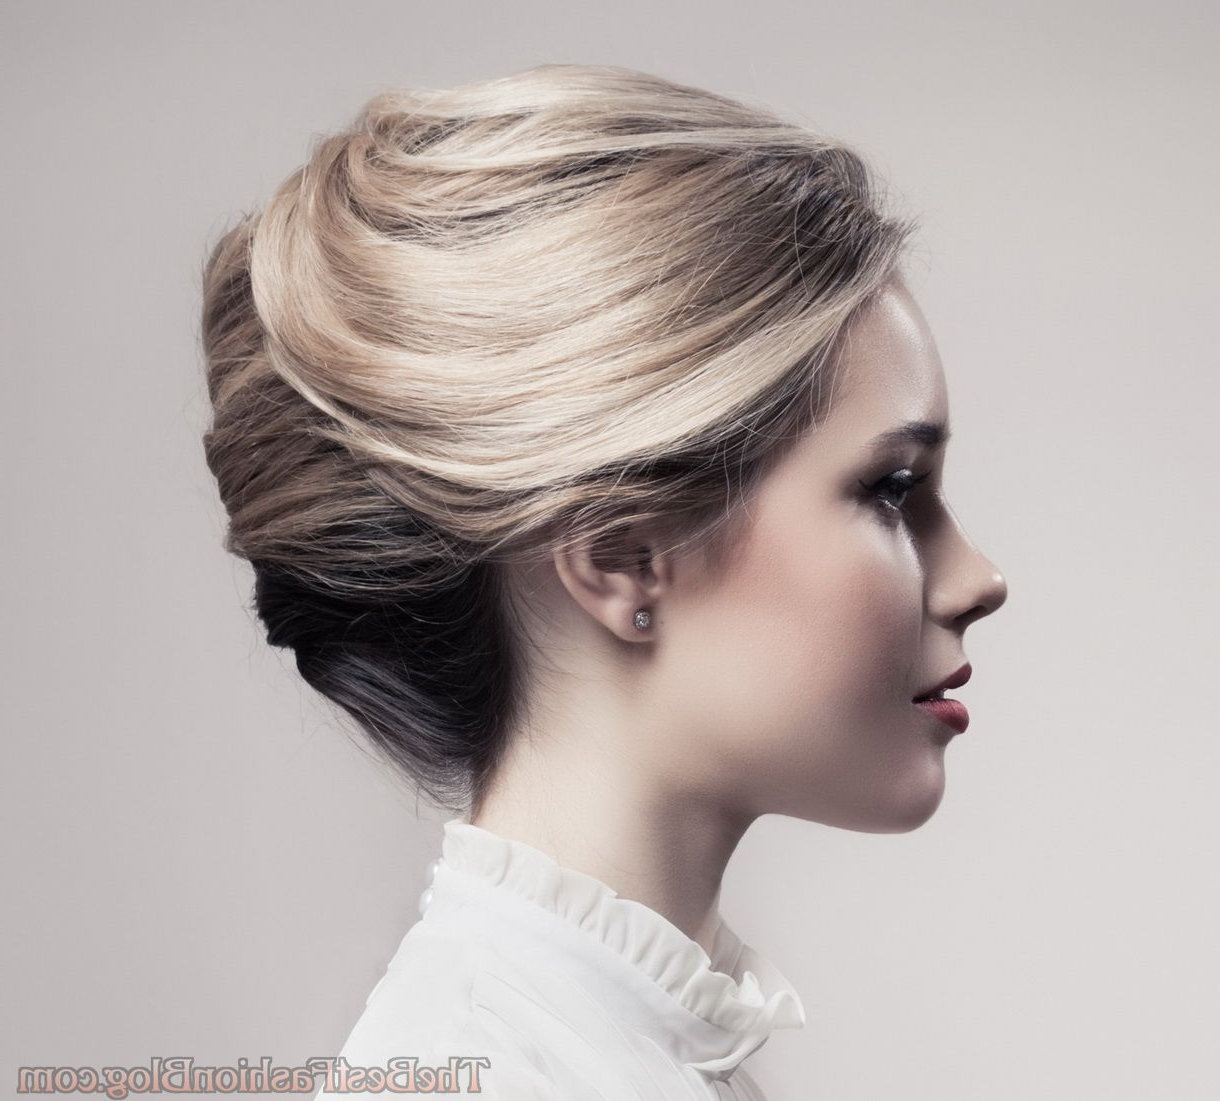 Special Occasion Hairstyles For Medium Hair – Hairstyle For Women & Man With Regard To Most Recent Special Occasion Medium Hairstyles (View 14 of 20)